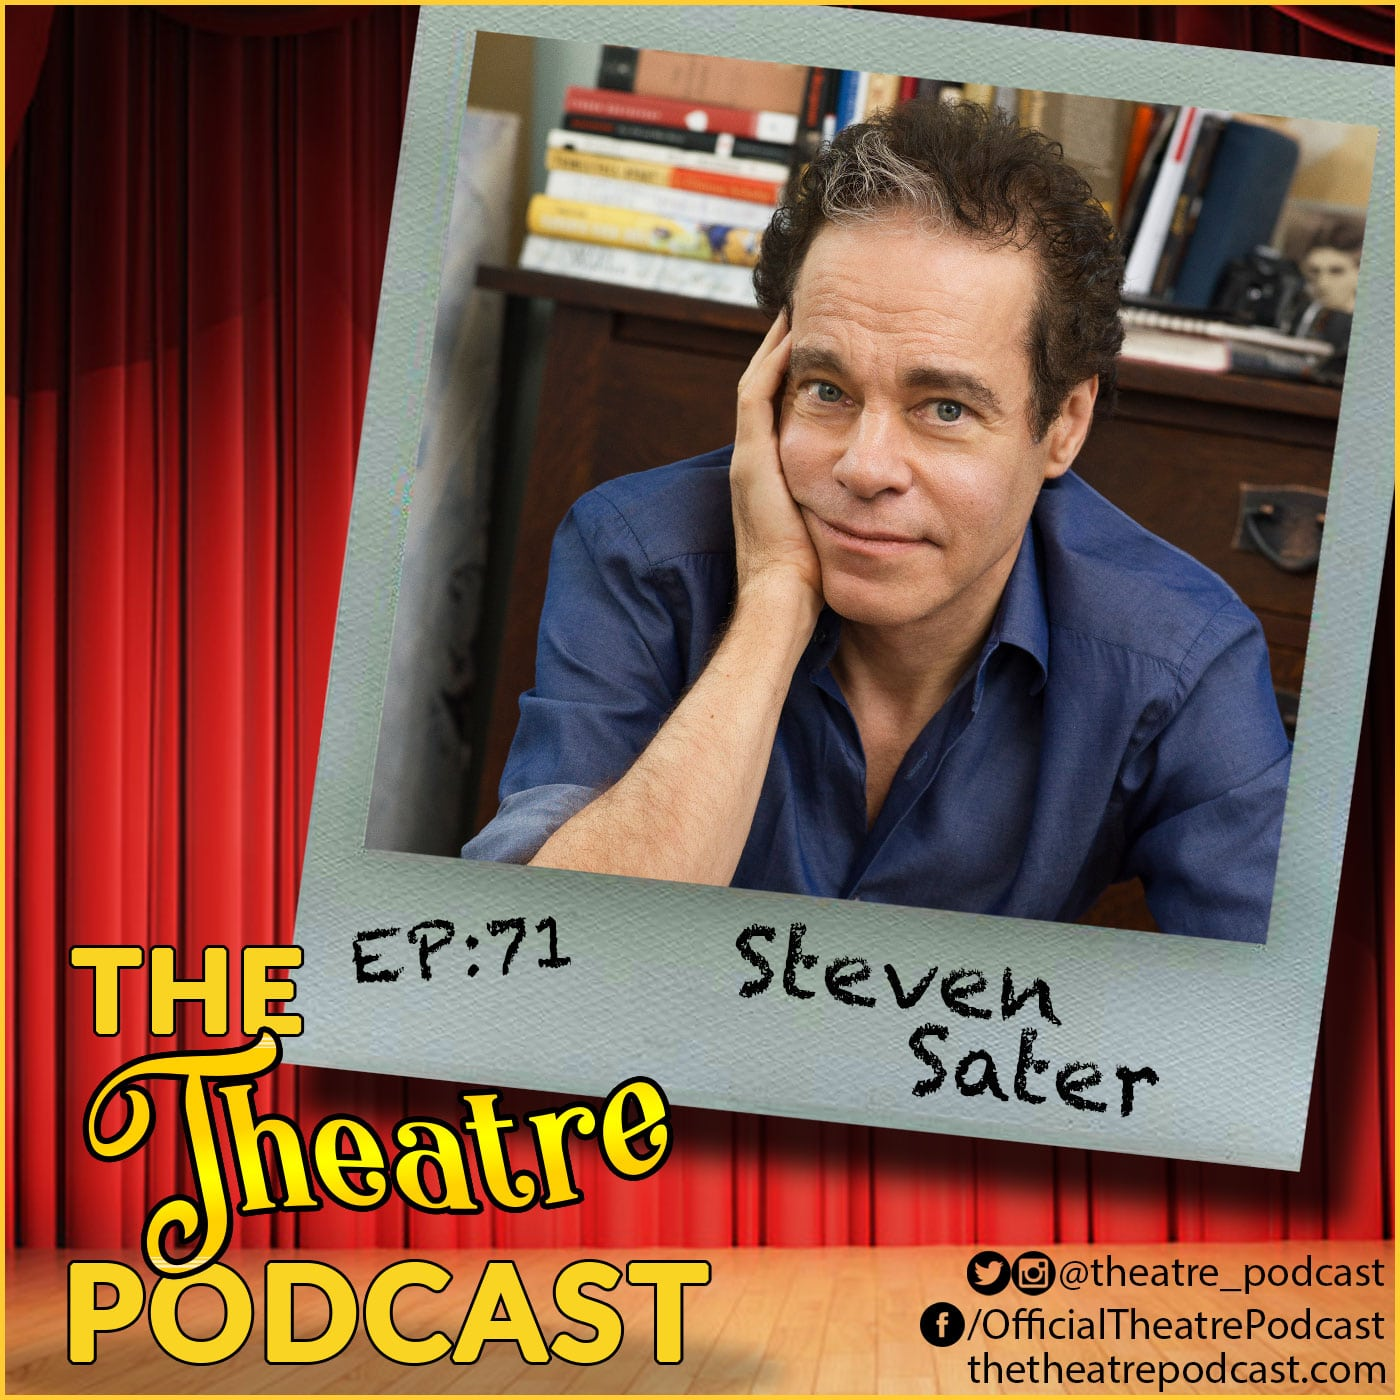 The Theater Podcast Ep71 - Steven Sater, Tony and Olivia Award winning poet, playwright, lyricist, television writer and screenwriter